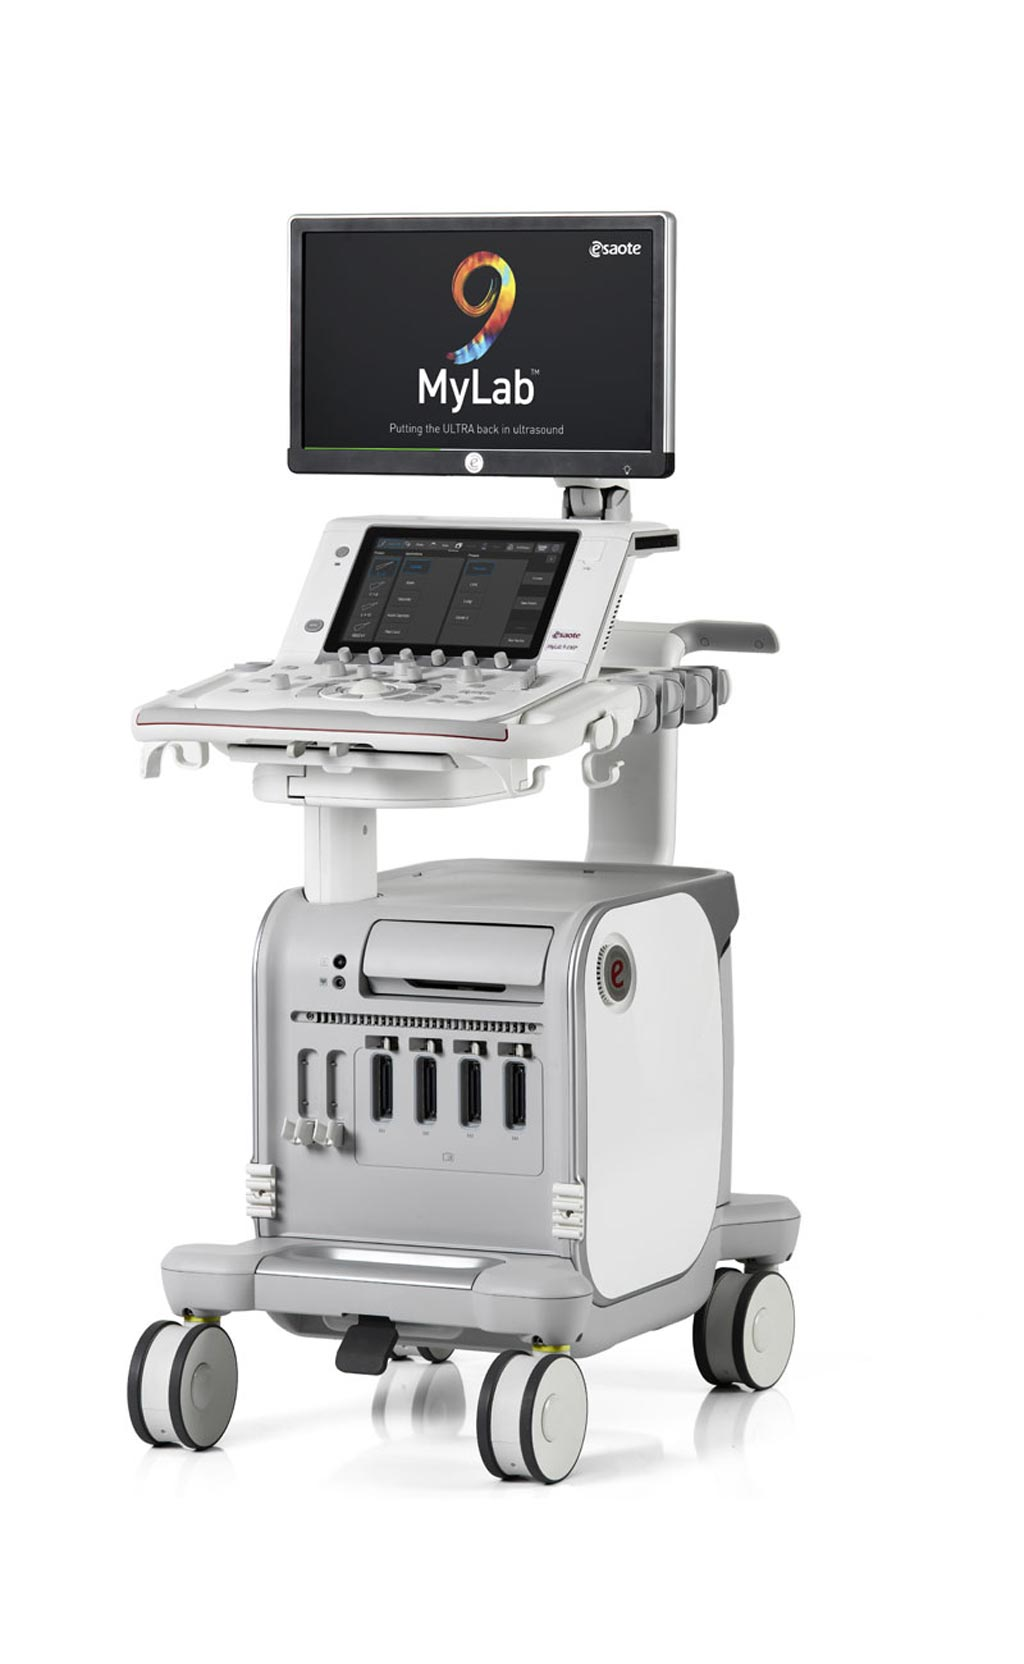 Image: The MyLab 9 eXP ultrasound system (Photo courtesy of Esaote).